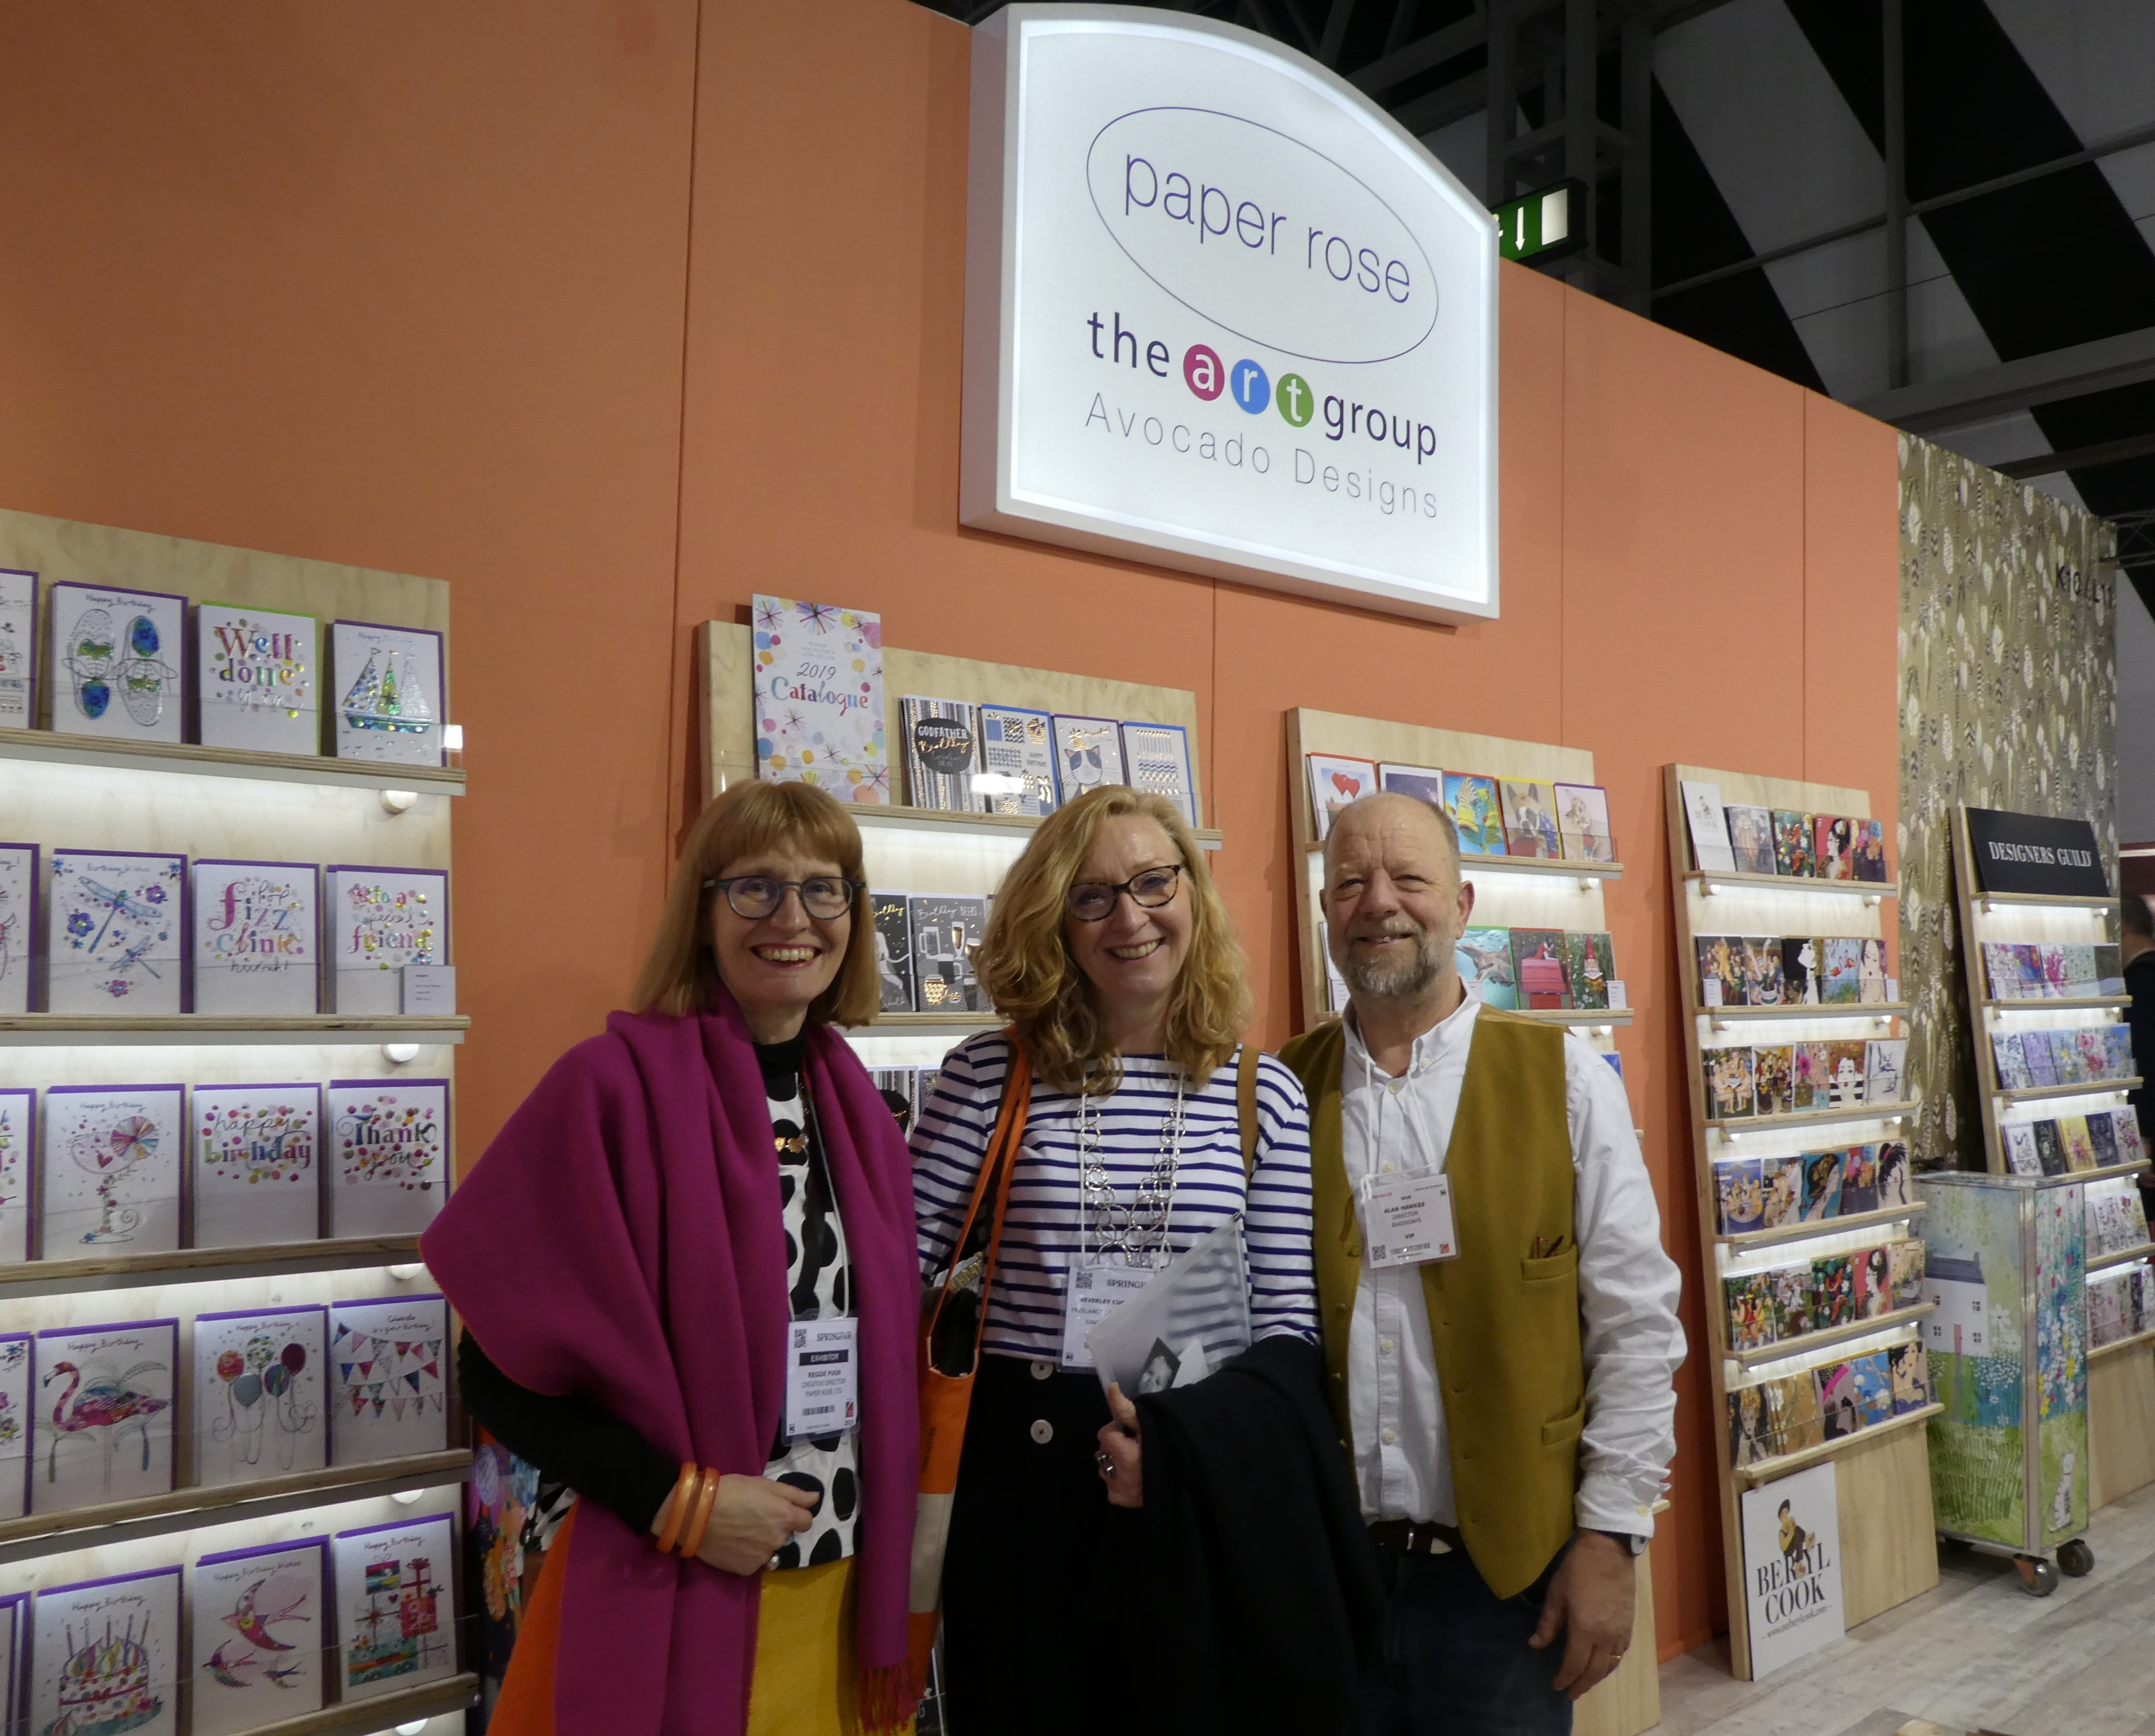 Above: Reggie (left) caught up with Alan Hawkes (the previous owner of Paper Rose) and industry chum, Bev Cunningham (formerly creative director of Abacus Cards, now head of Ginger Bee Studios, her own freelance creative and photography business) at last year's Spring Fair.